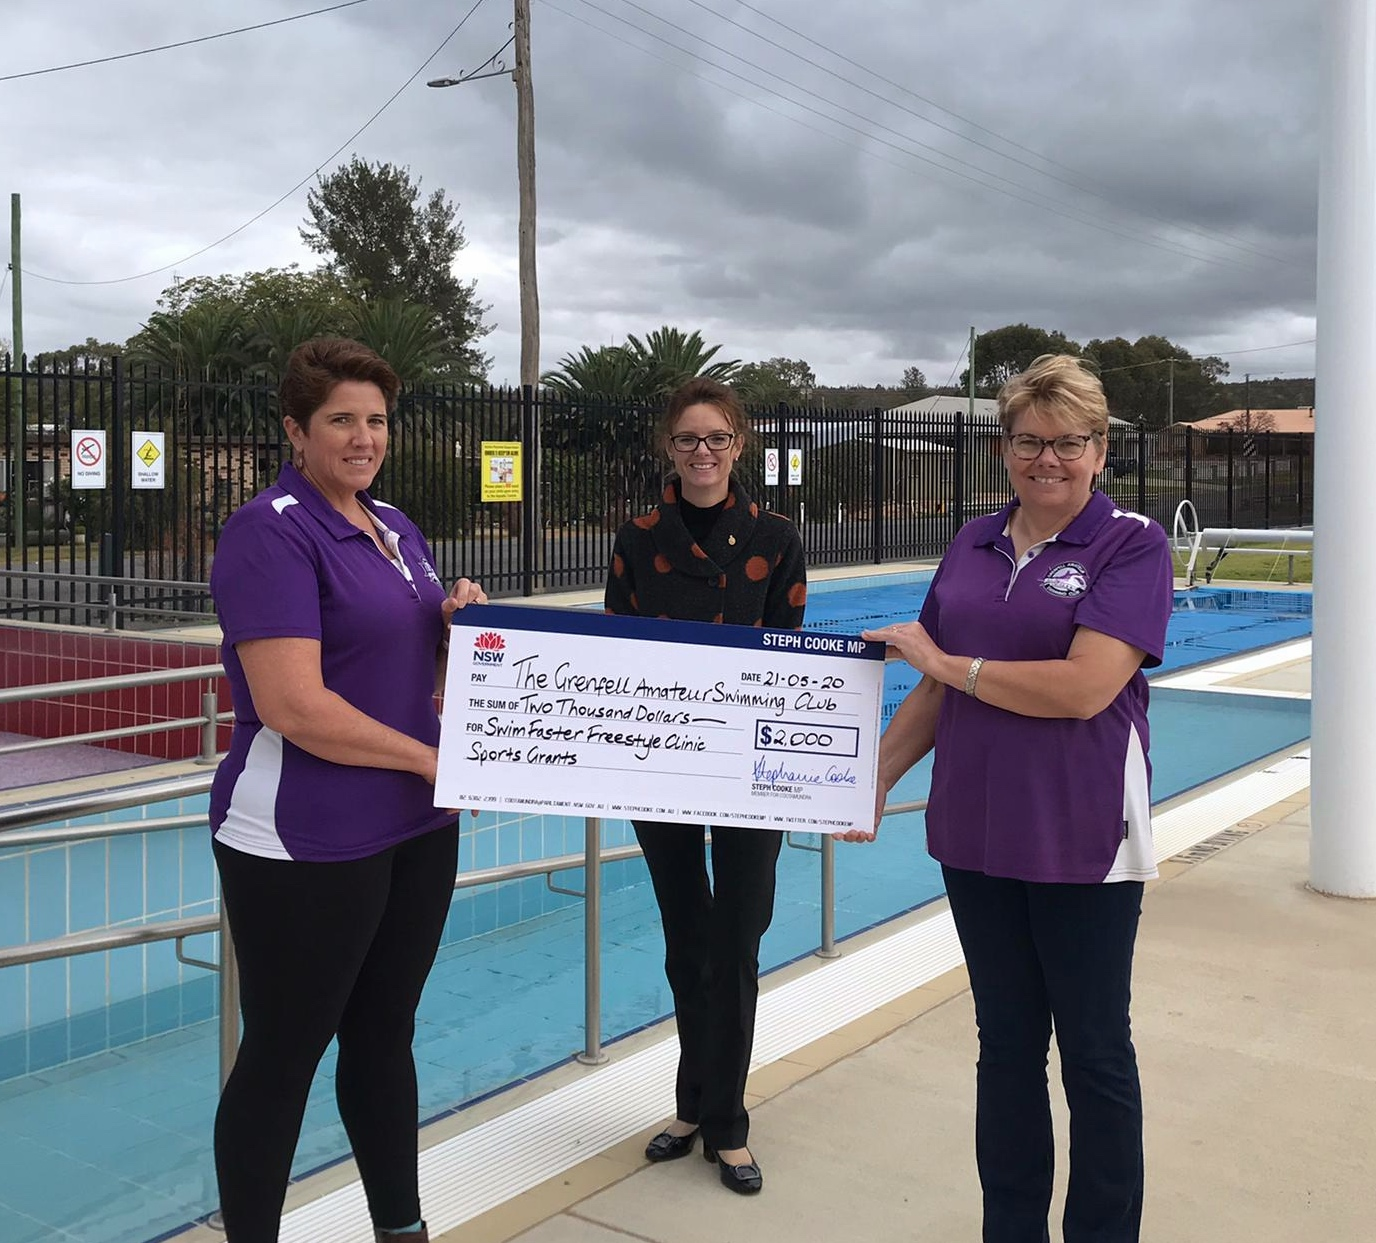 Liz Robinson, Steph Cooke MP and Nicola Mitton hold a large cheque and stand at the edge of a swimming pool. Liz and Nicola wear club shirts. All three smile at the camera.